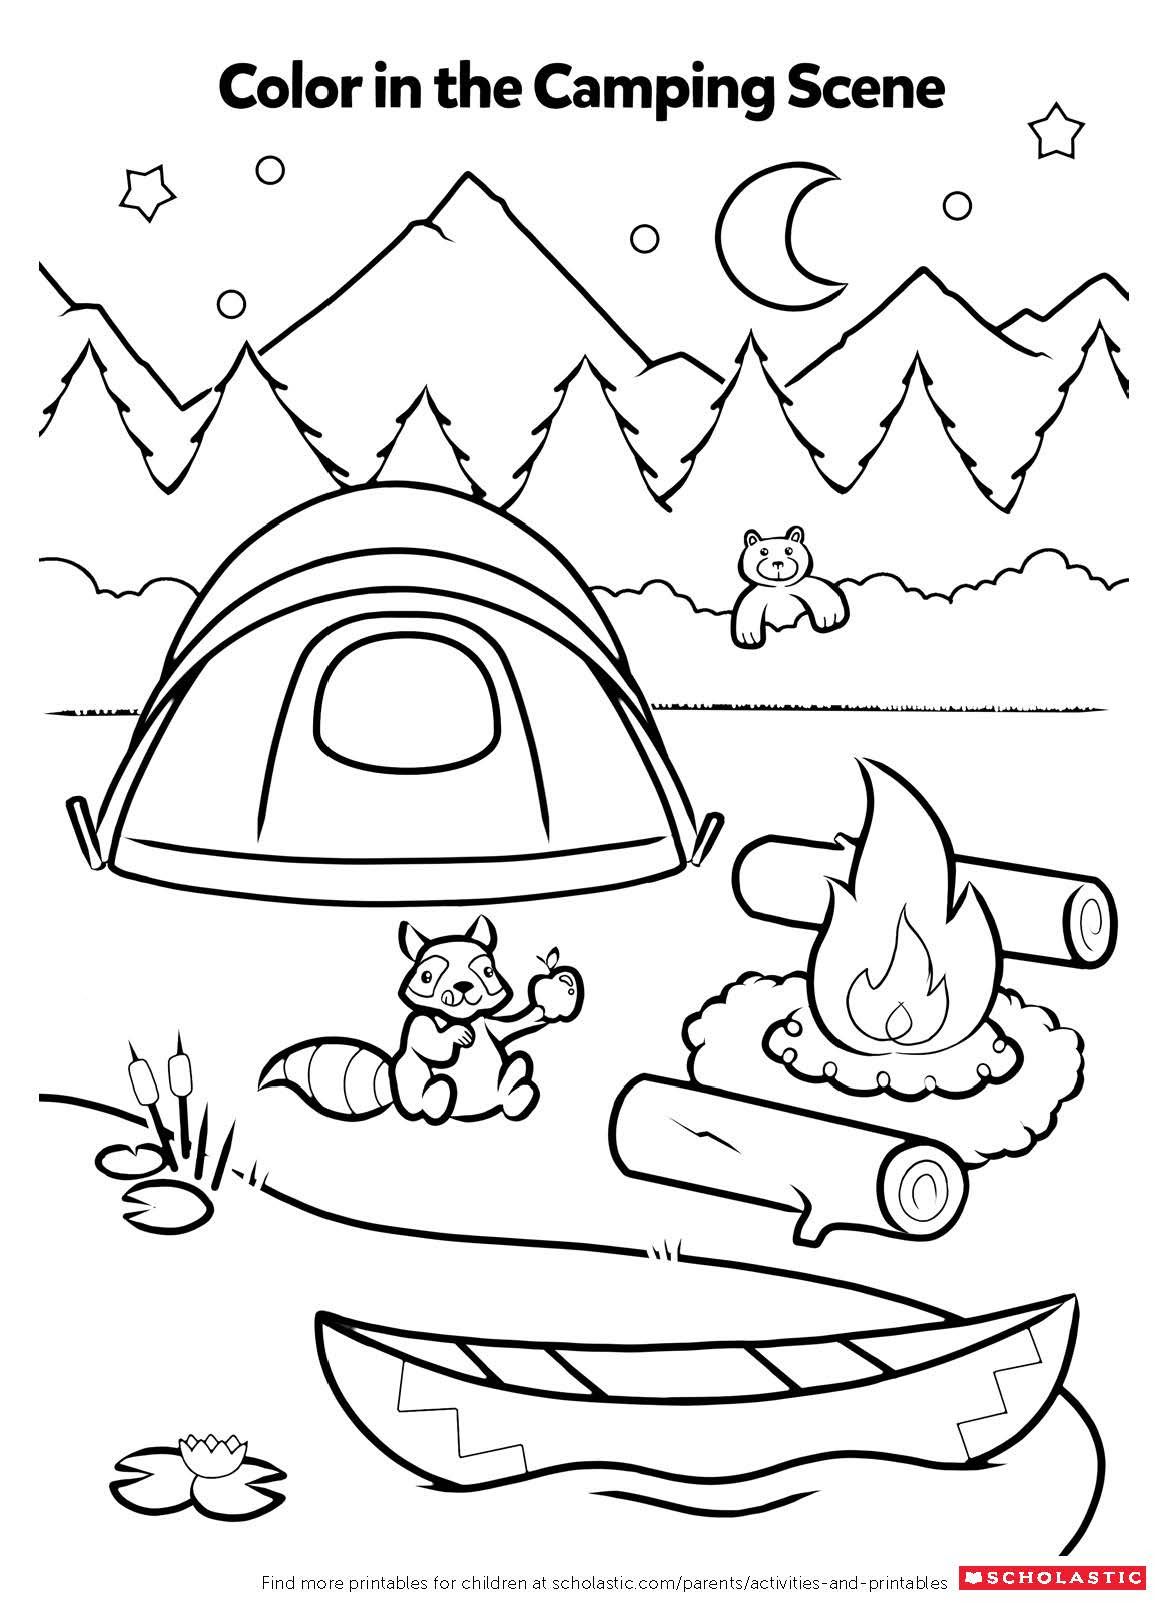 Campfire Coloring Activity | Worksheets & Printables ...